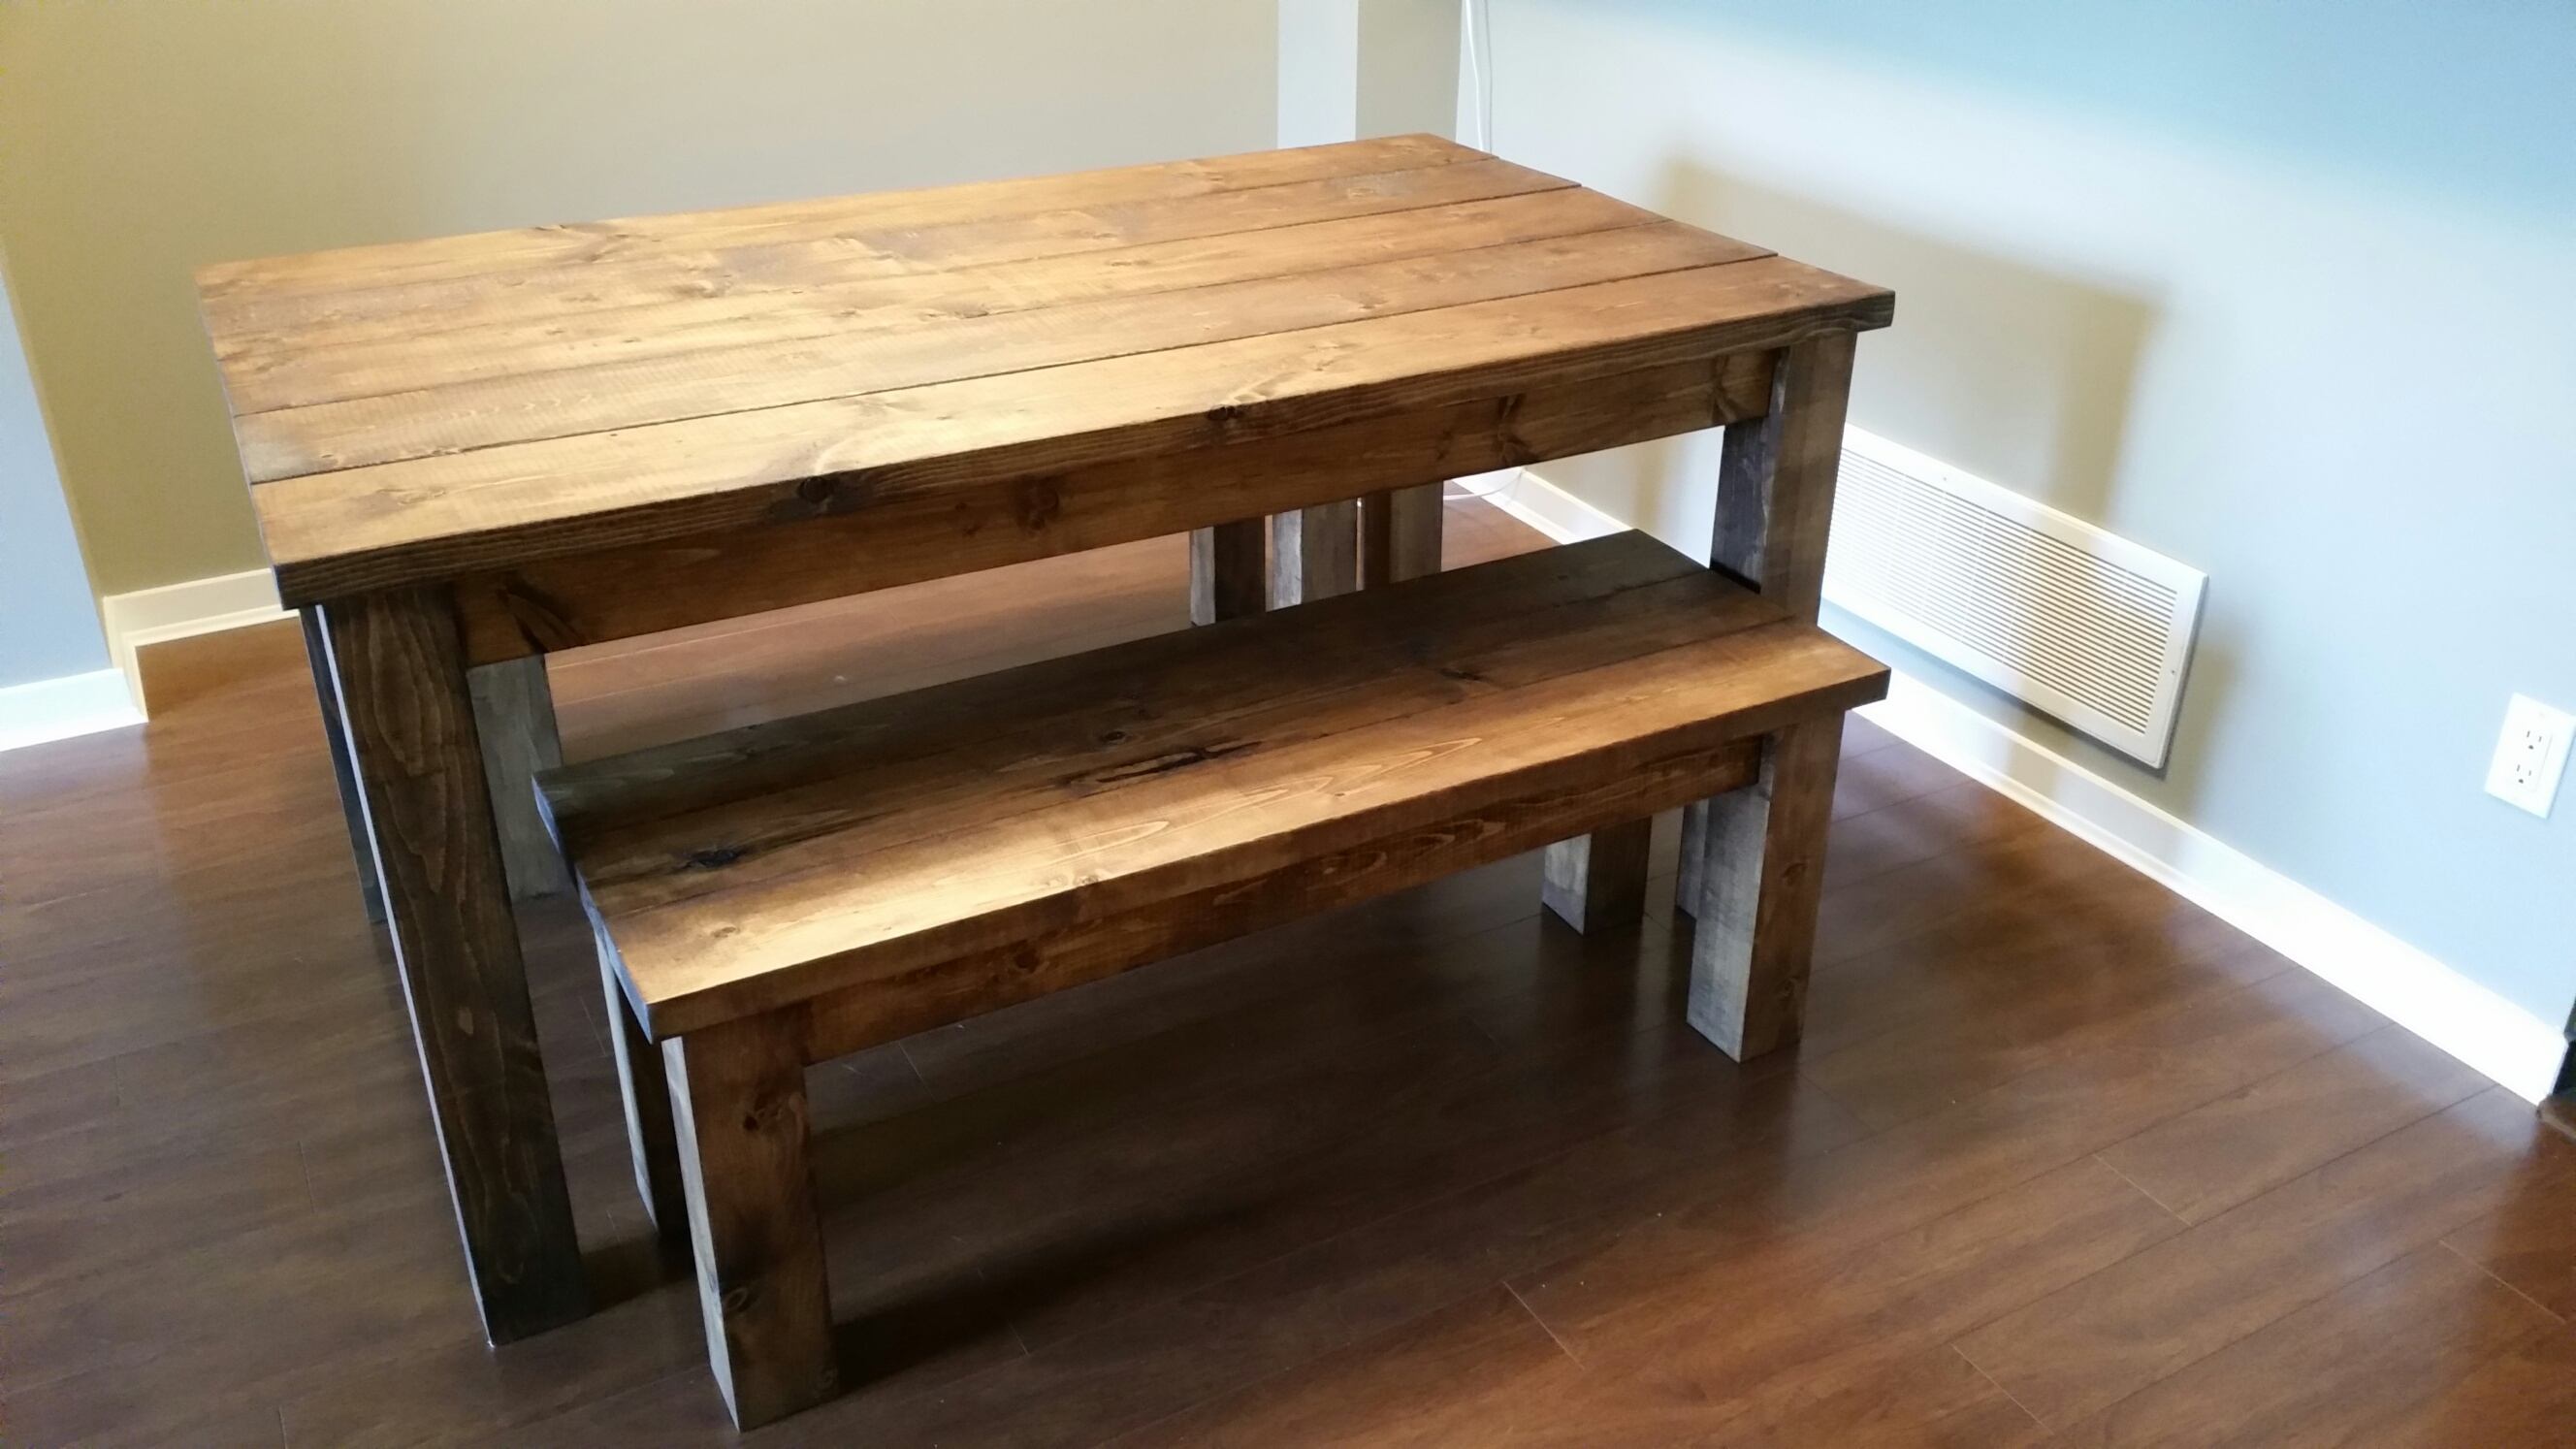 benches dining tables kitchen table benches Provincial Pine Table and Bench set1